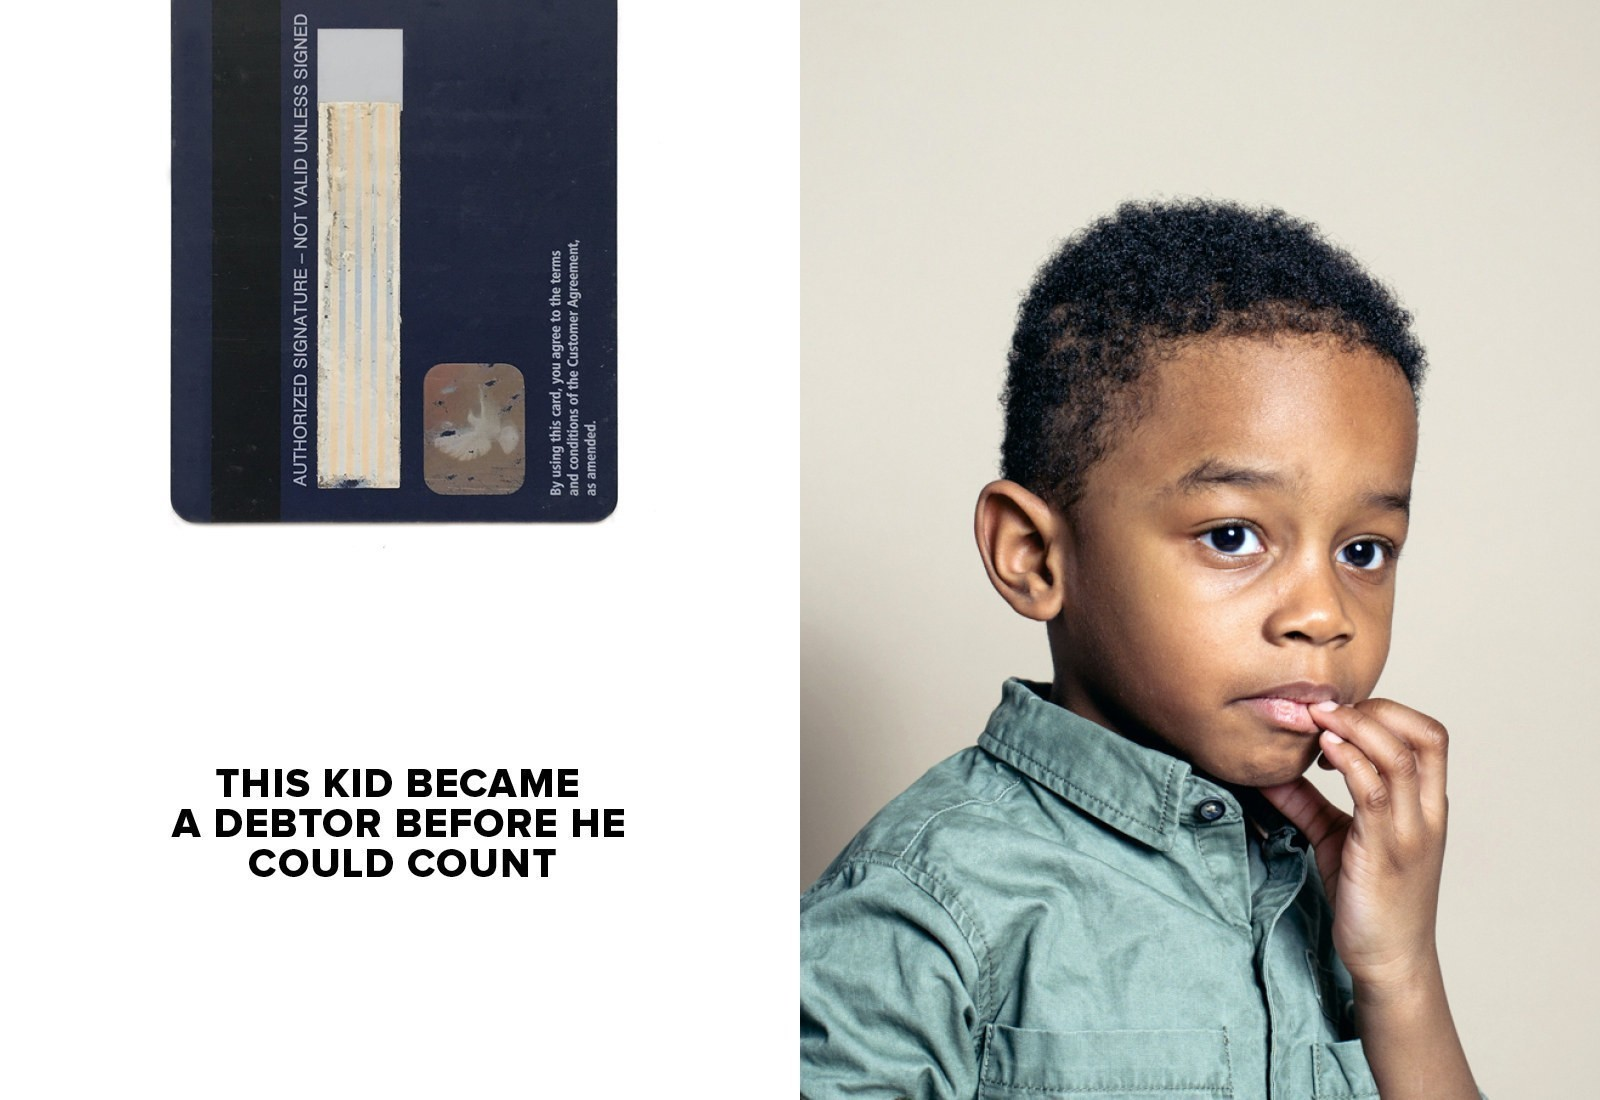 A Dad Stole This Toddler's Identity To Open Credit Cards. Here's How The System Failed Him.